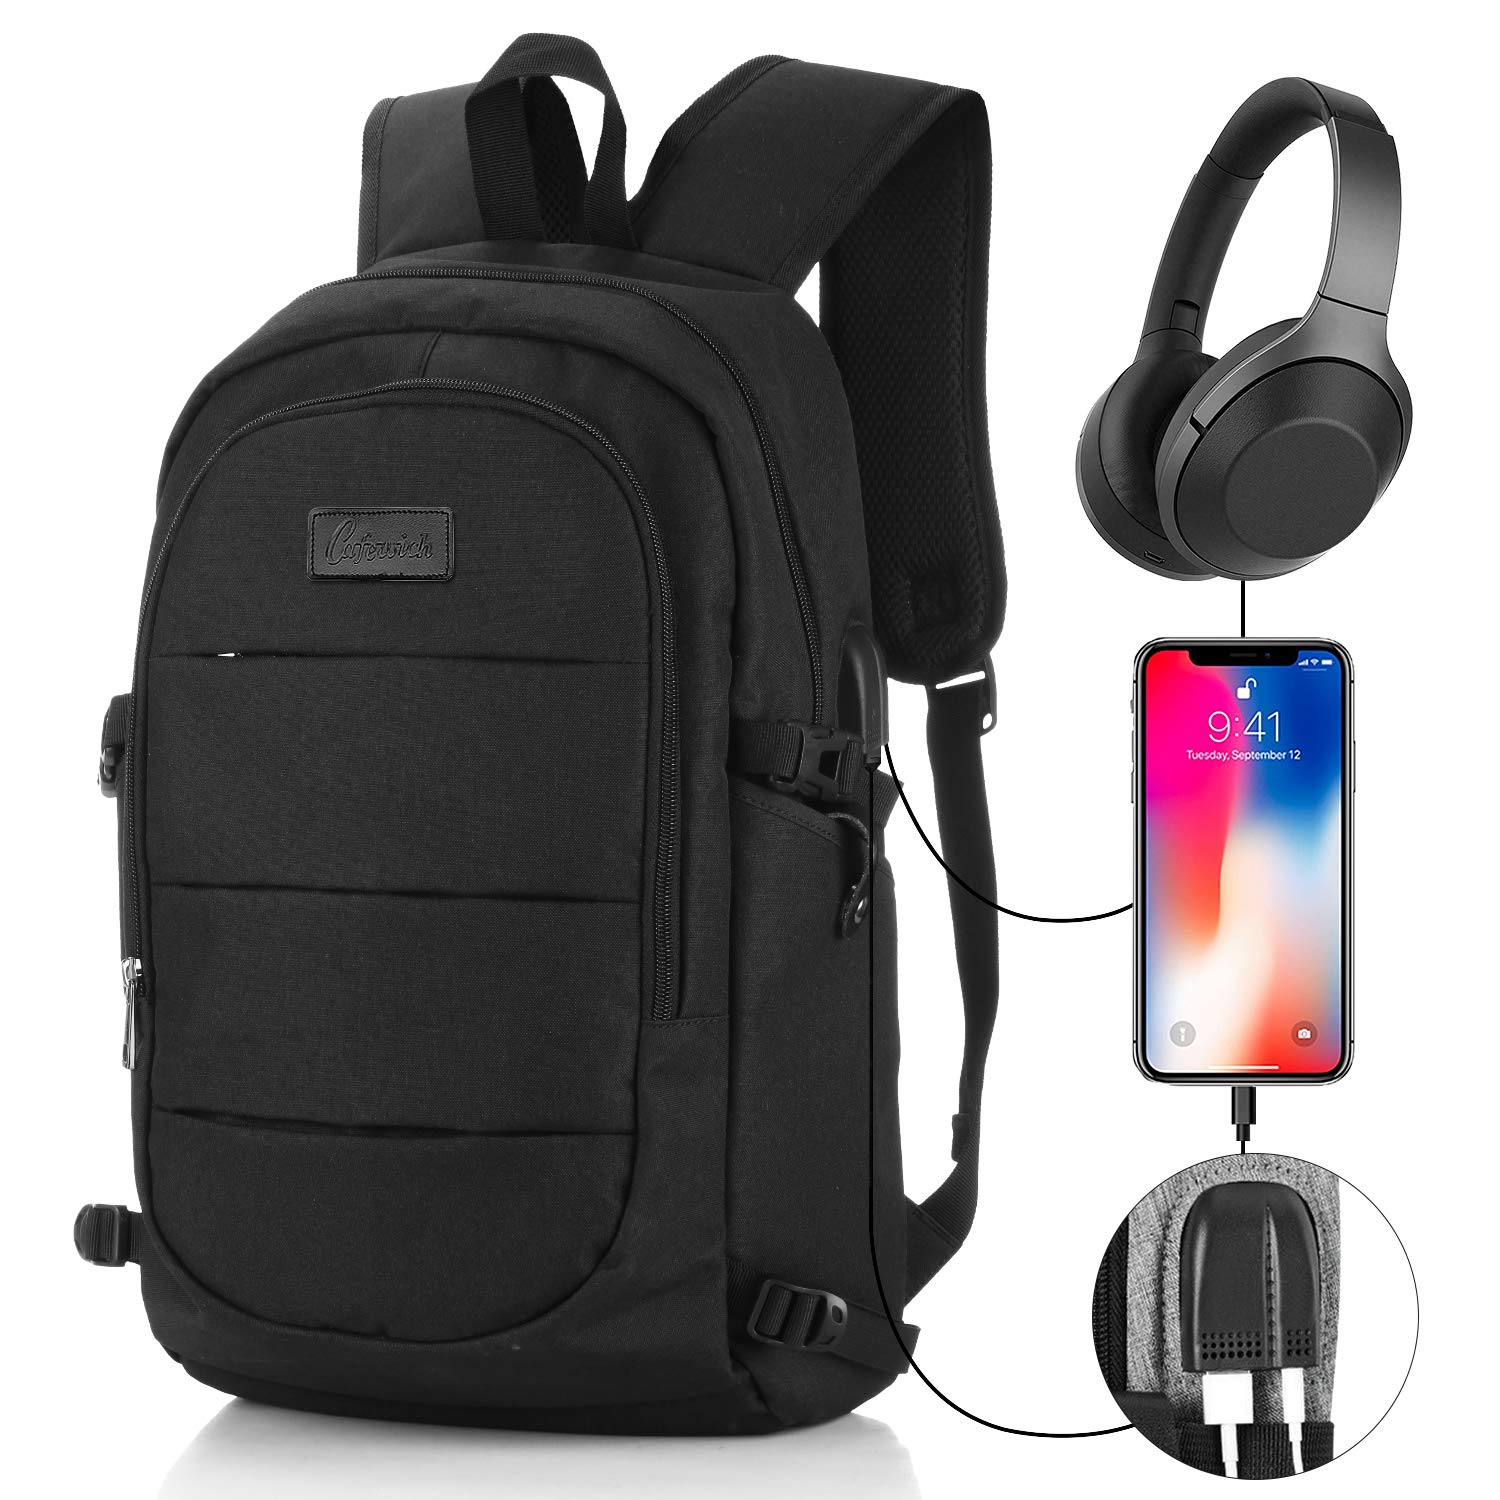 Travel Laptop Backpack for Man Women Anti-theft Business Computer Bag Waterproof Backpack with USB Charging Port Headphone interface for College Student,Fits Under 17 Laptop by Cafewich Black